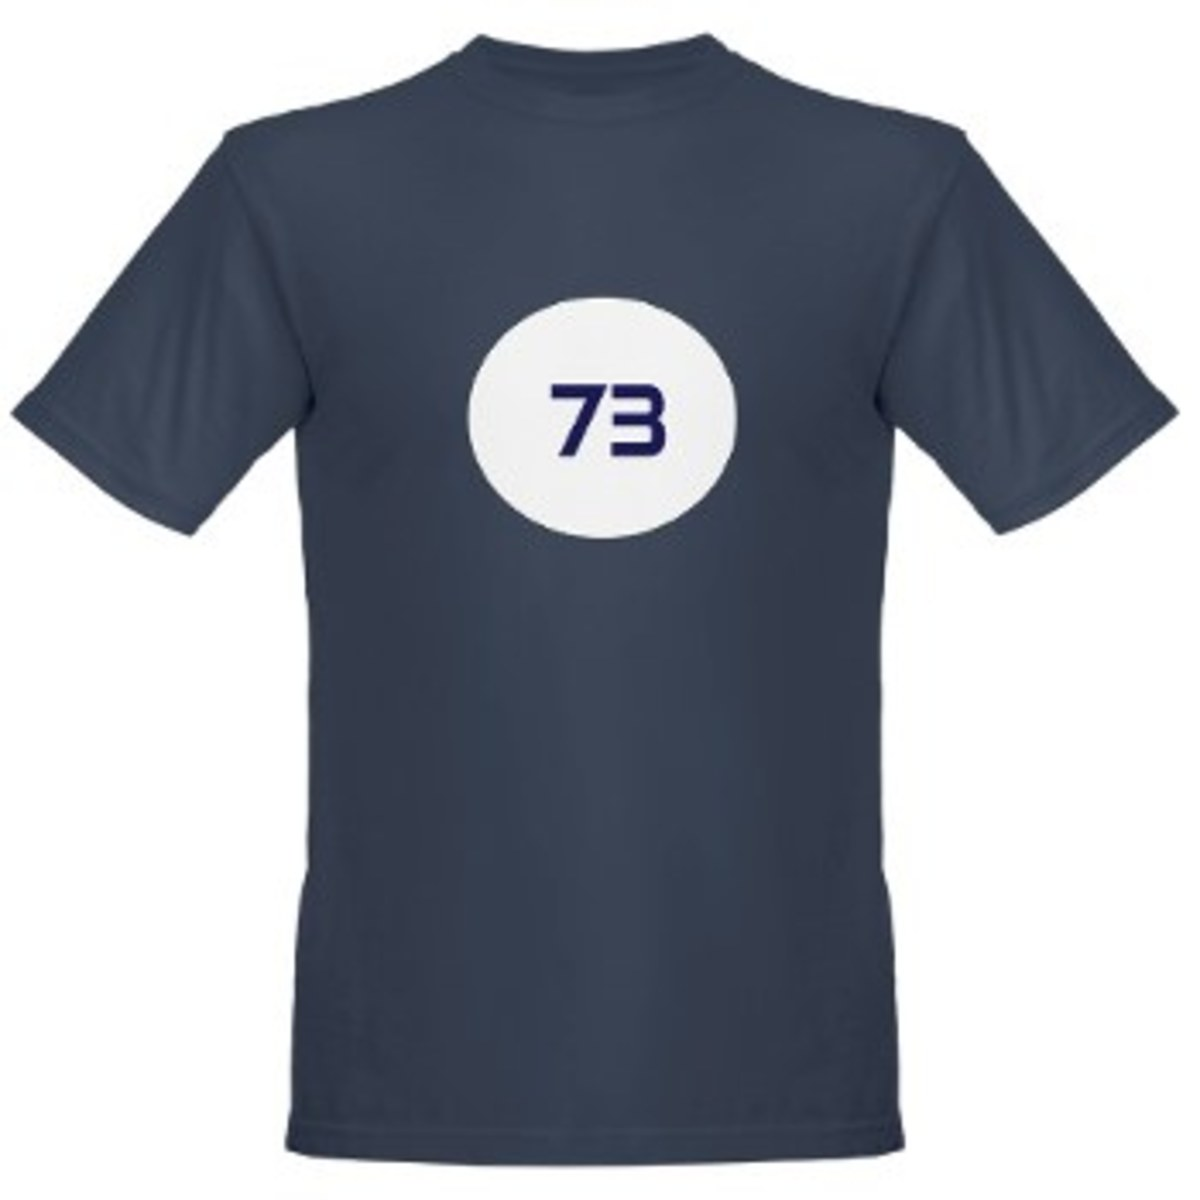 Sheldon Cooper's 73 Shirt:  What Does it Mean?